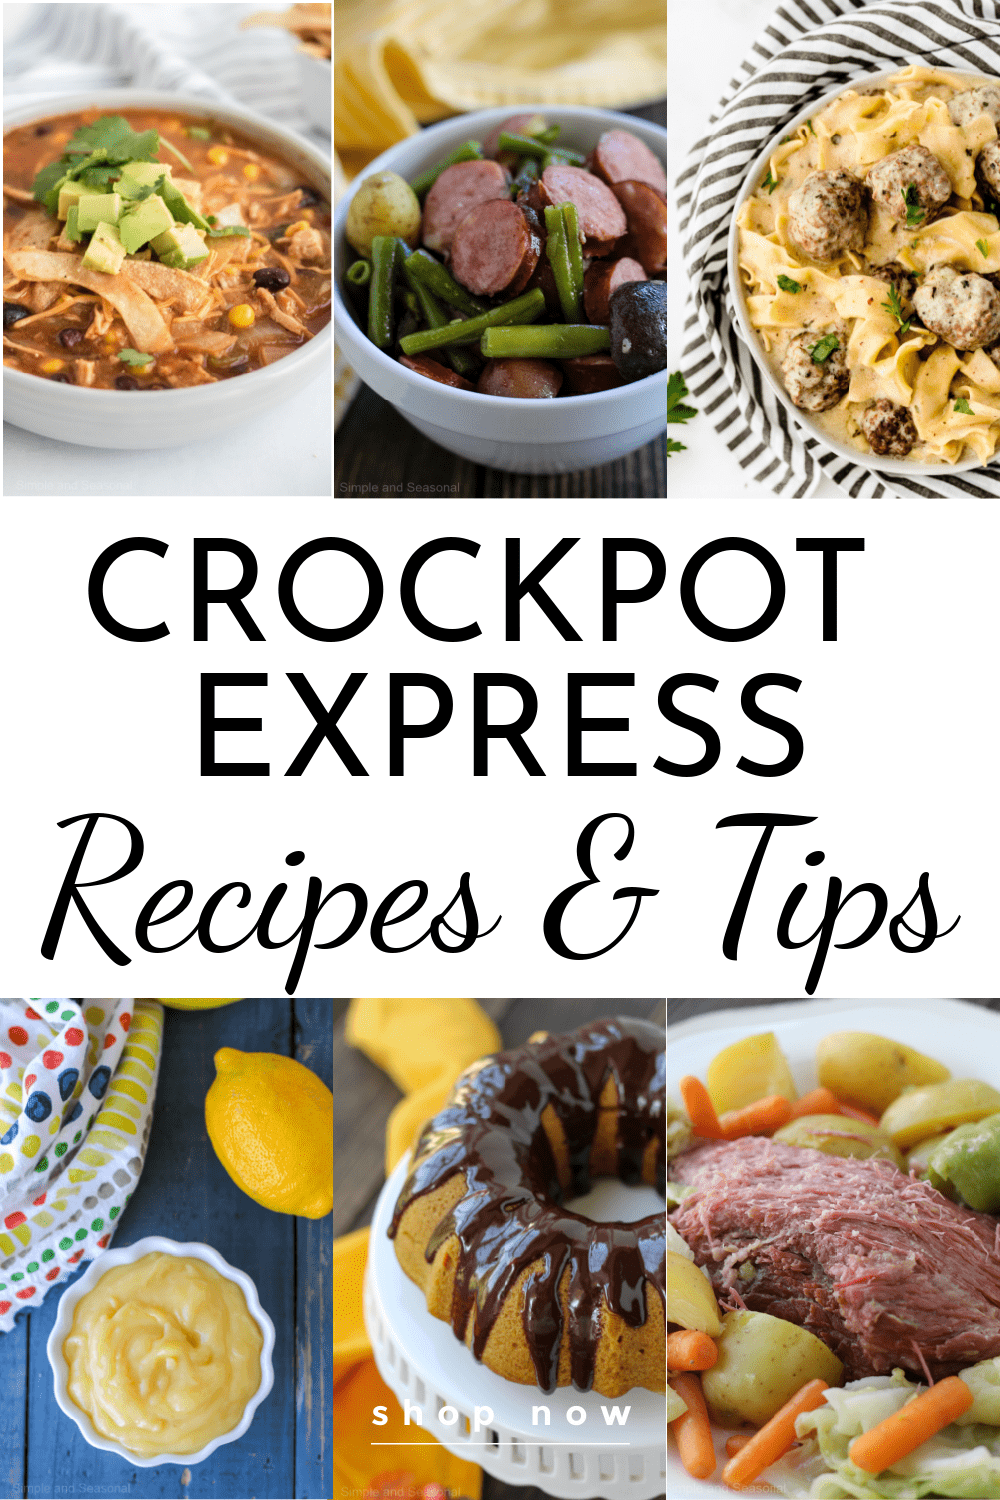 Simple Crockpot Express Recipes that are written specifically for the Crockpot Express! Find family-friendly recipes that are packed with flavor without being long and complicated. Plus, read some tips on using the machine and trouble shooting. You're going to love your new Crockpot Express! #CrockpotExpress #PressureCooker #EasyRecipes via @nmburk